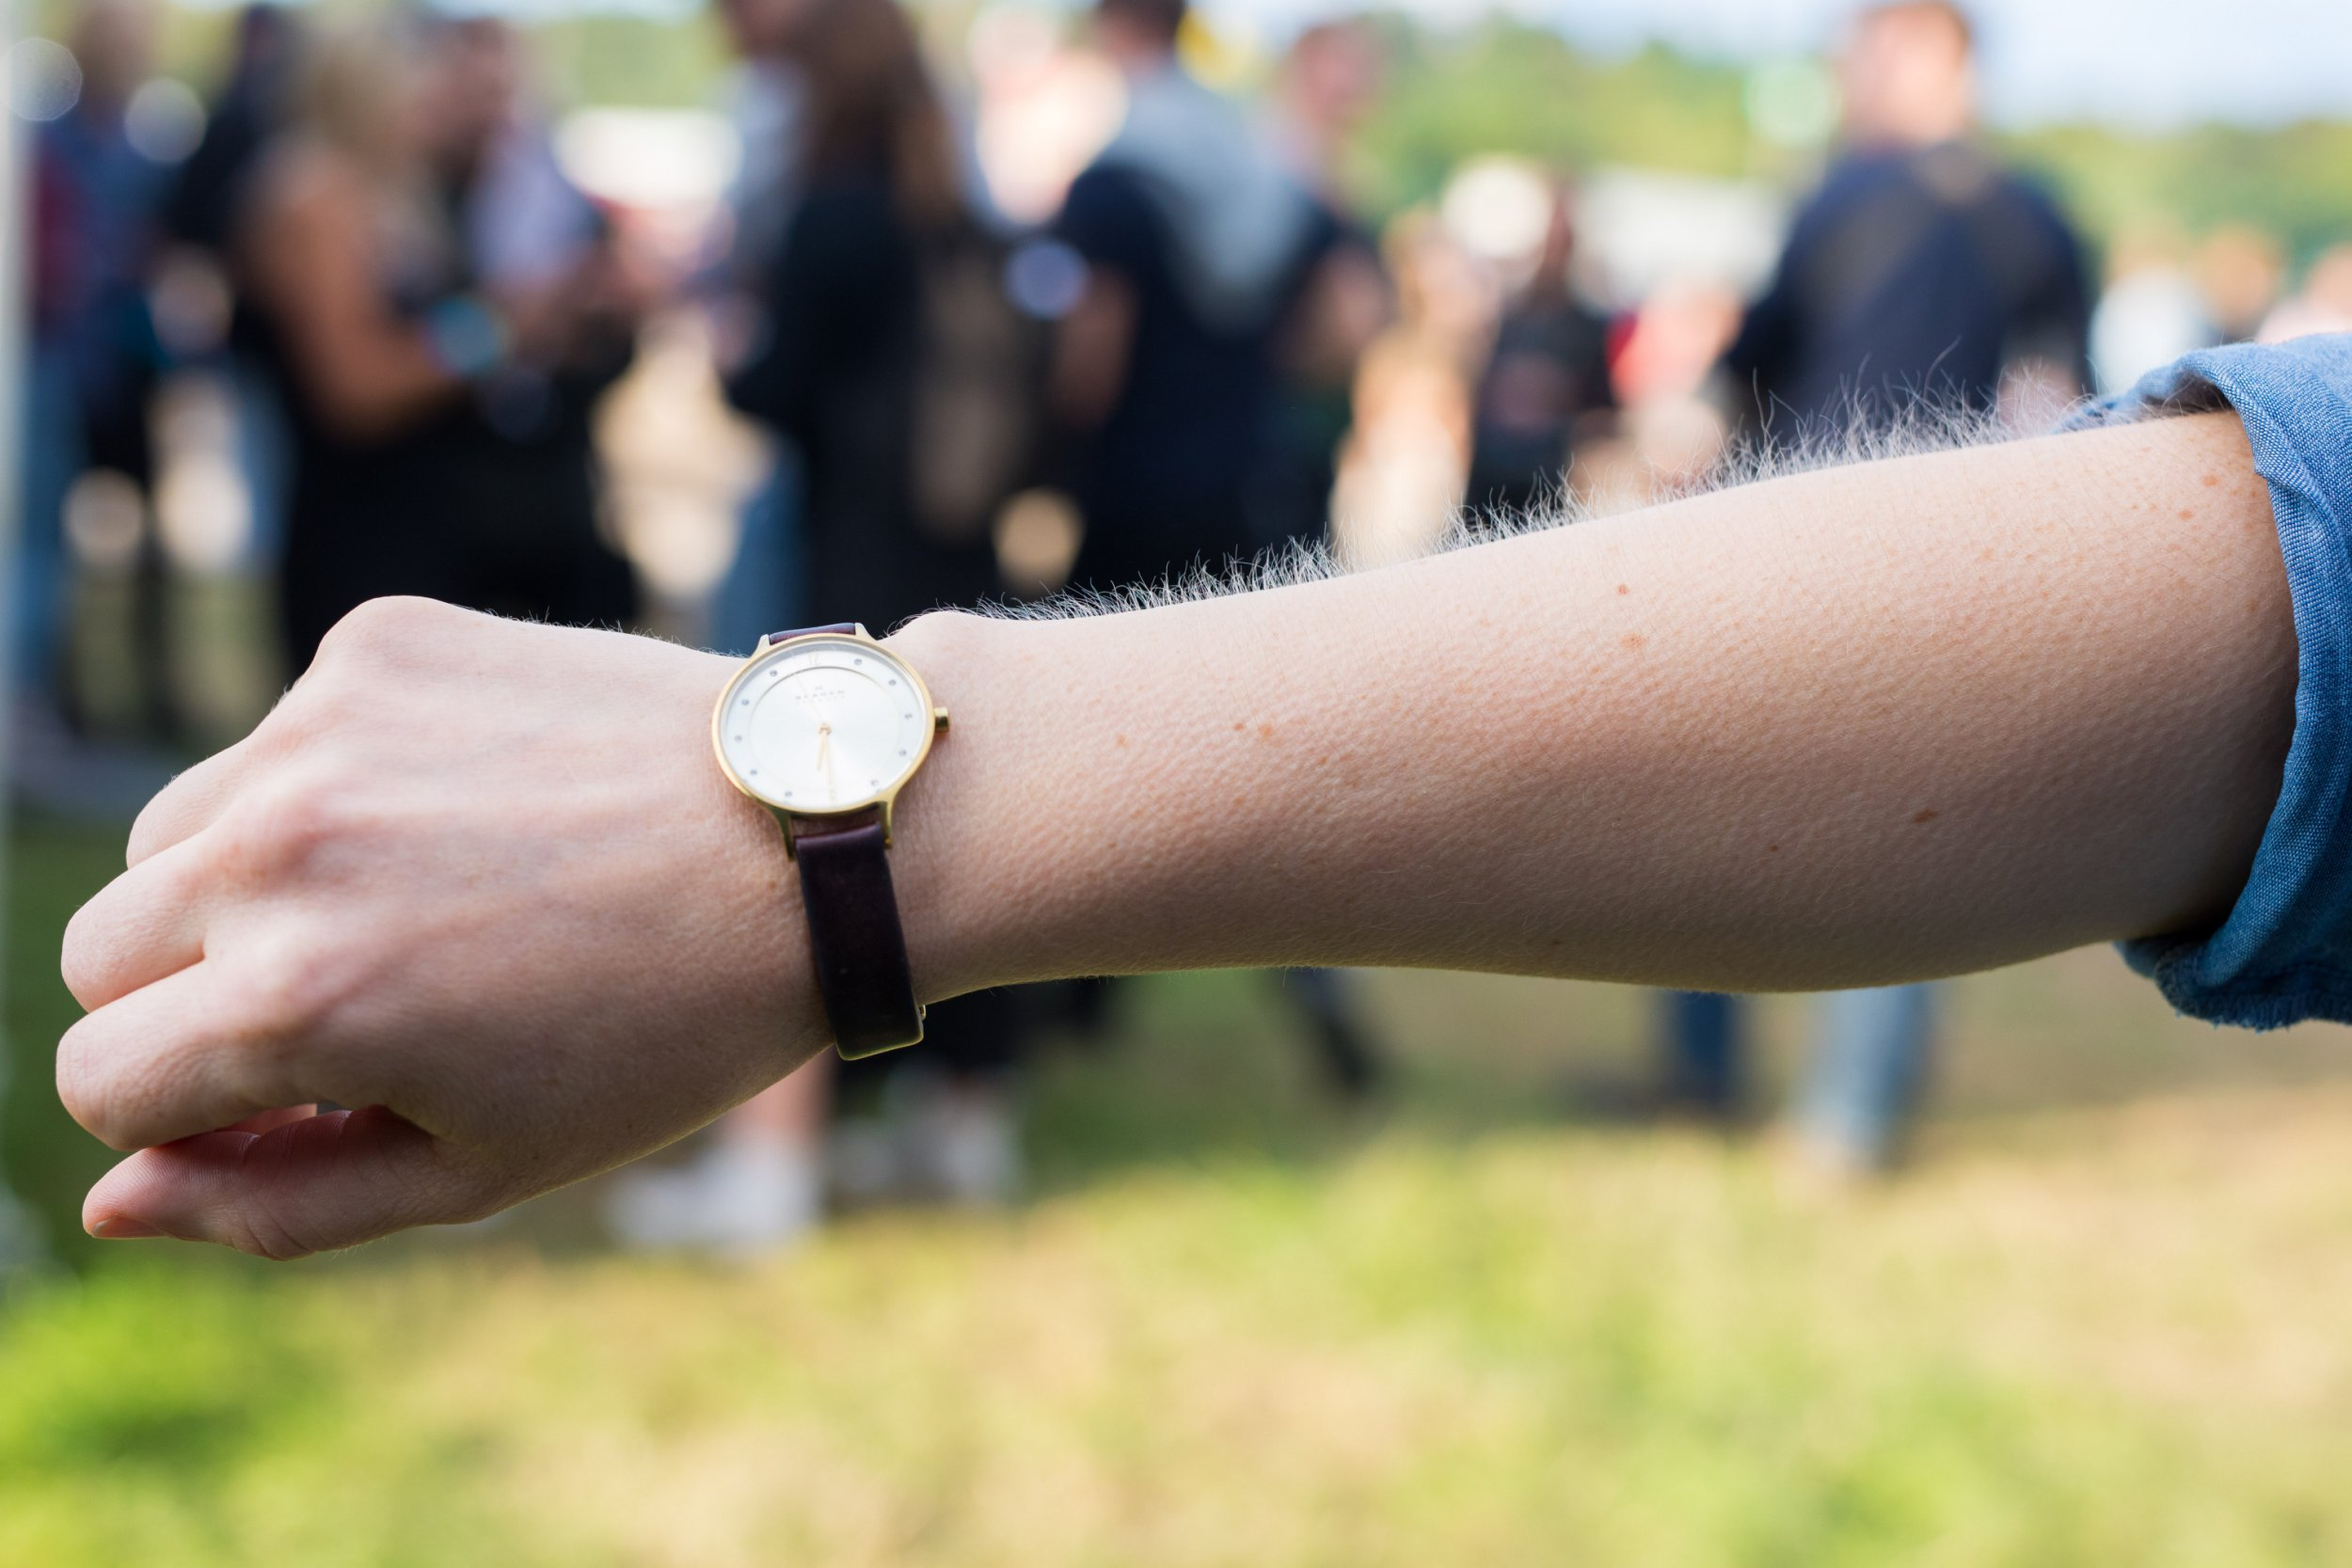 ***EMBARGOED UNTIL 00.01HRS WEDNESDAY 12 SEPTEMBER 2018*** Goose bumps on a man's arm. See SWNS story SWGOOSE; Goose bumps are good for your mental wellbeing, experts have claimed. Researchers who studied 100 test subjects believe goose bumps experienced when watching live entertainment put us in a positive mindset - boosting our mental health. The claims were made by Robin Murphy from the University of Oxford and Matthew Sachs from Harvard University. And those who experience the sensation also tend to be in better physical health, are more creative and friendlier than those who don???t, according to the study. Participants in the study watched a 45 minute performance at a summer music festival - 55 per cent said they experienced goose bumps during it and the rest did not. The researchers then asked them about their outlook on life, how empathetic they are, perceptions of their own mental and physical health and more - before comparing the findings. Carried out to celebrate the benefits available to cardholders through Barclaycard Entertainment, the study follows previous studies which identified live music as one the biggest causes of goosebumps.